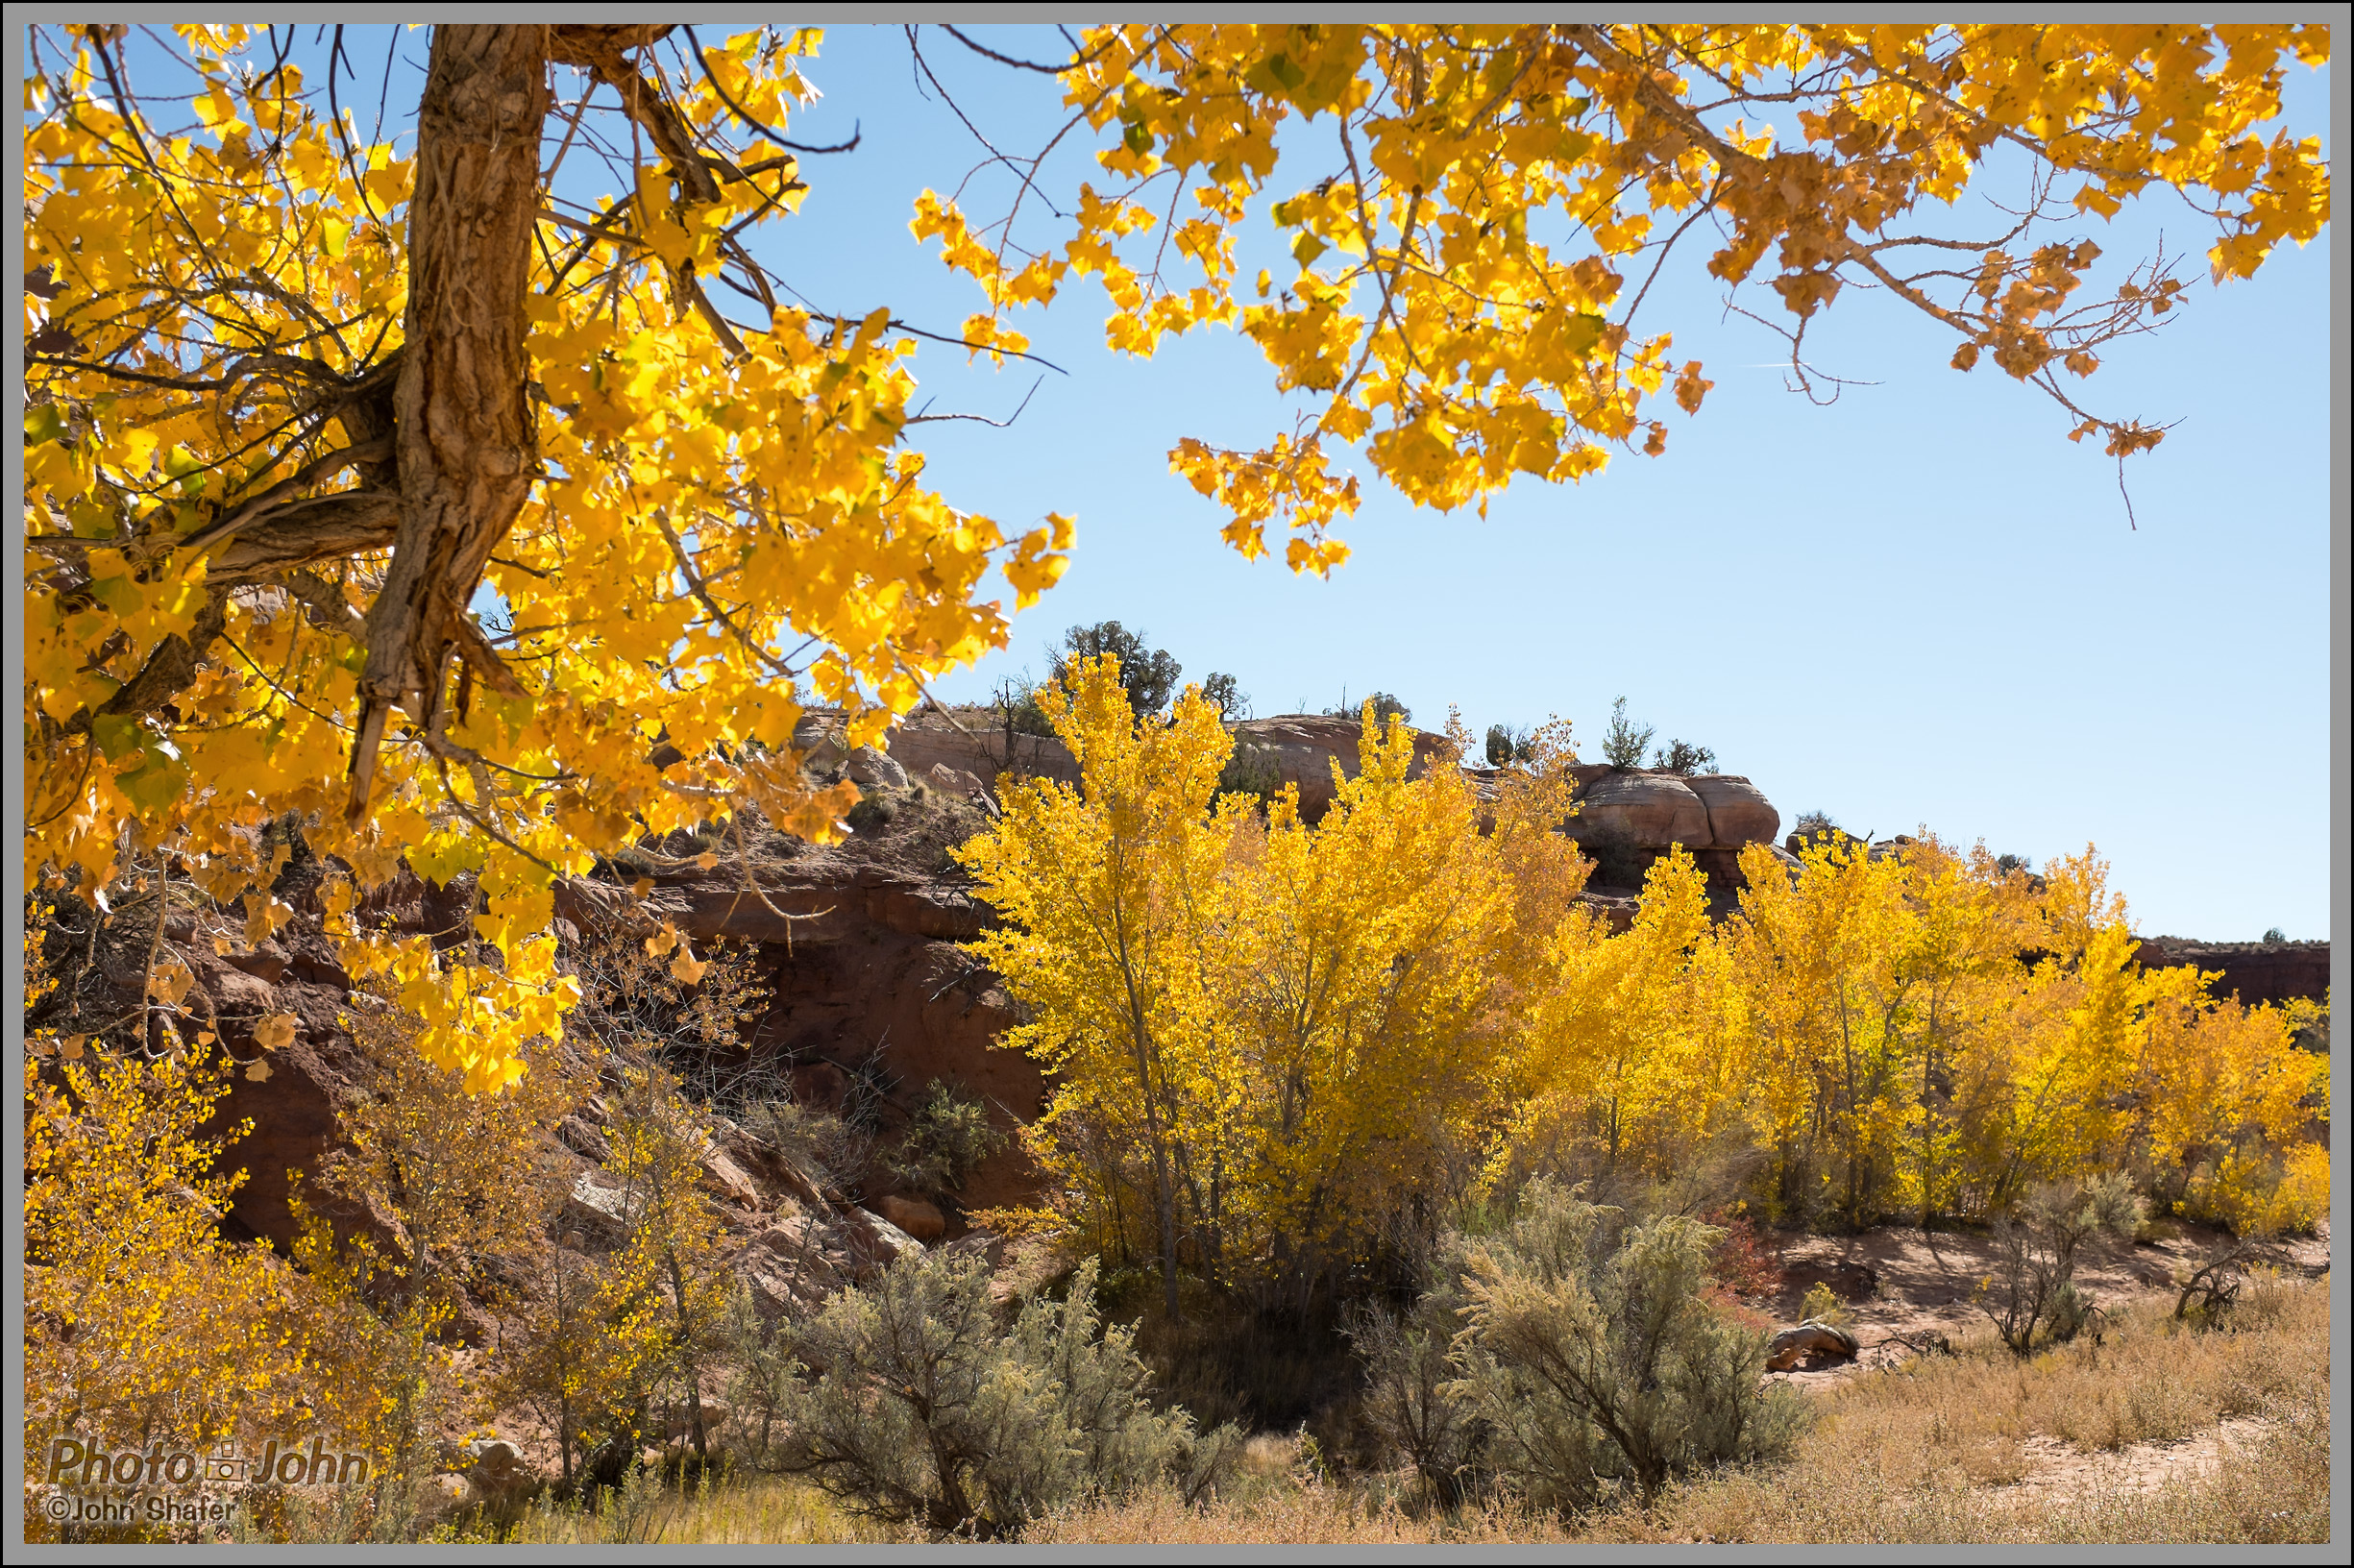 Fujifilm X100S - Desert Gold - Fall Cottonwood Trees